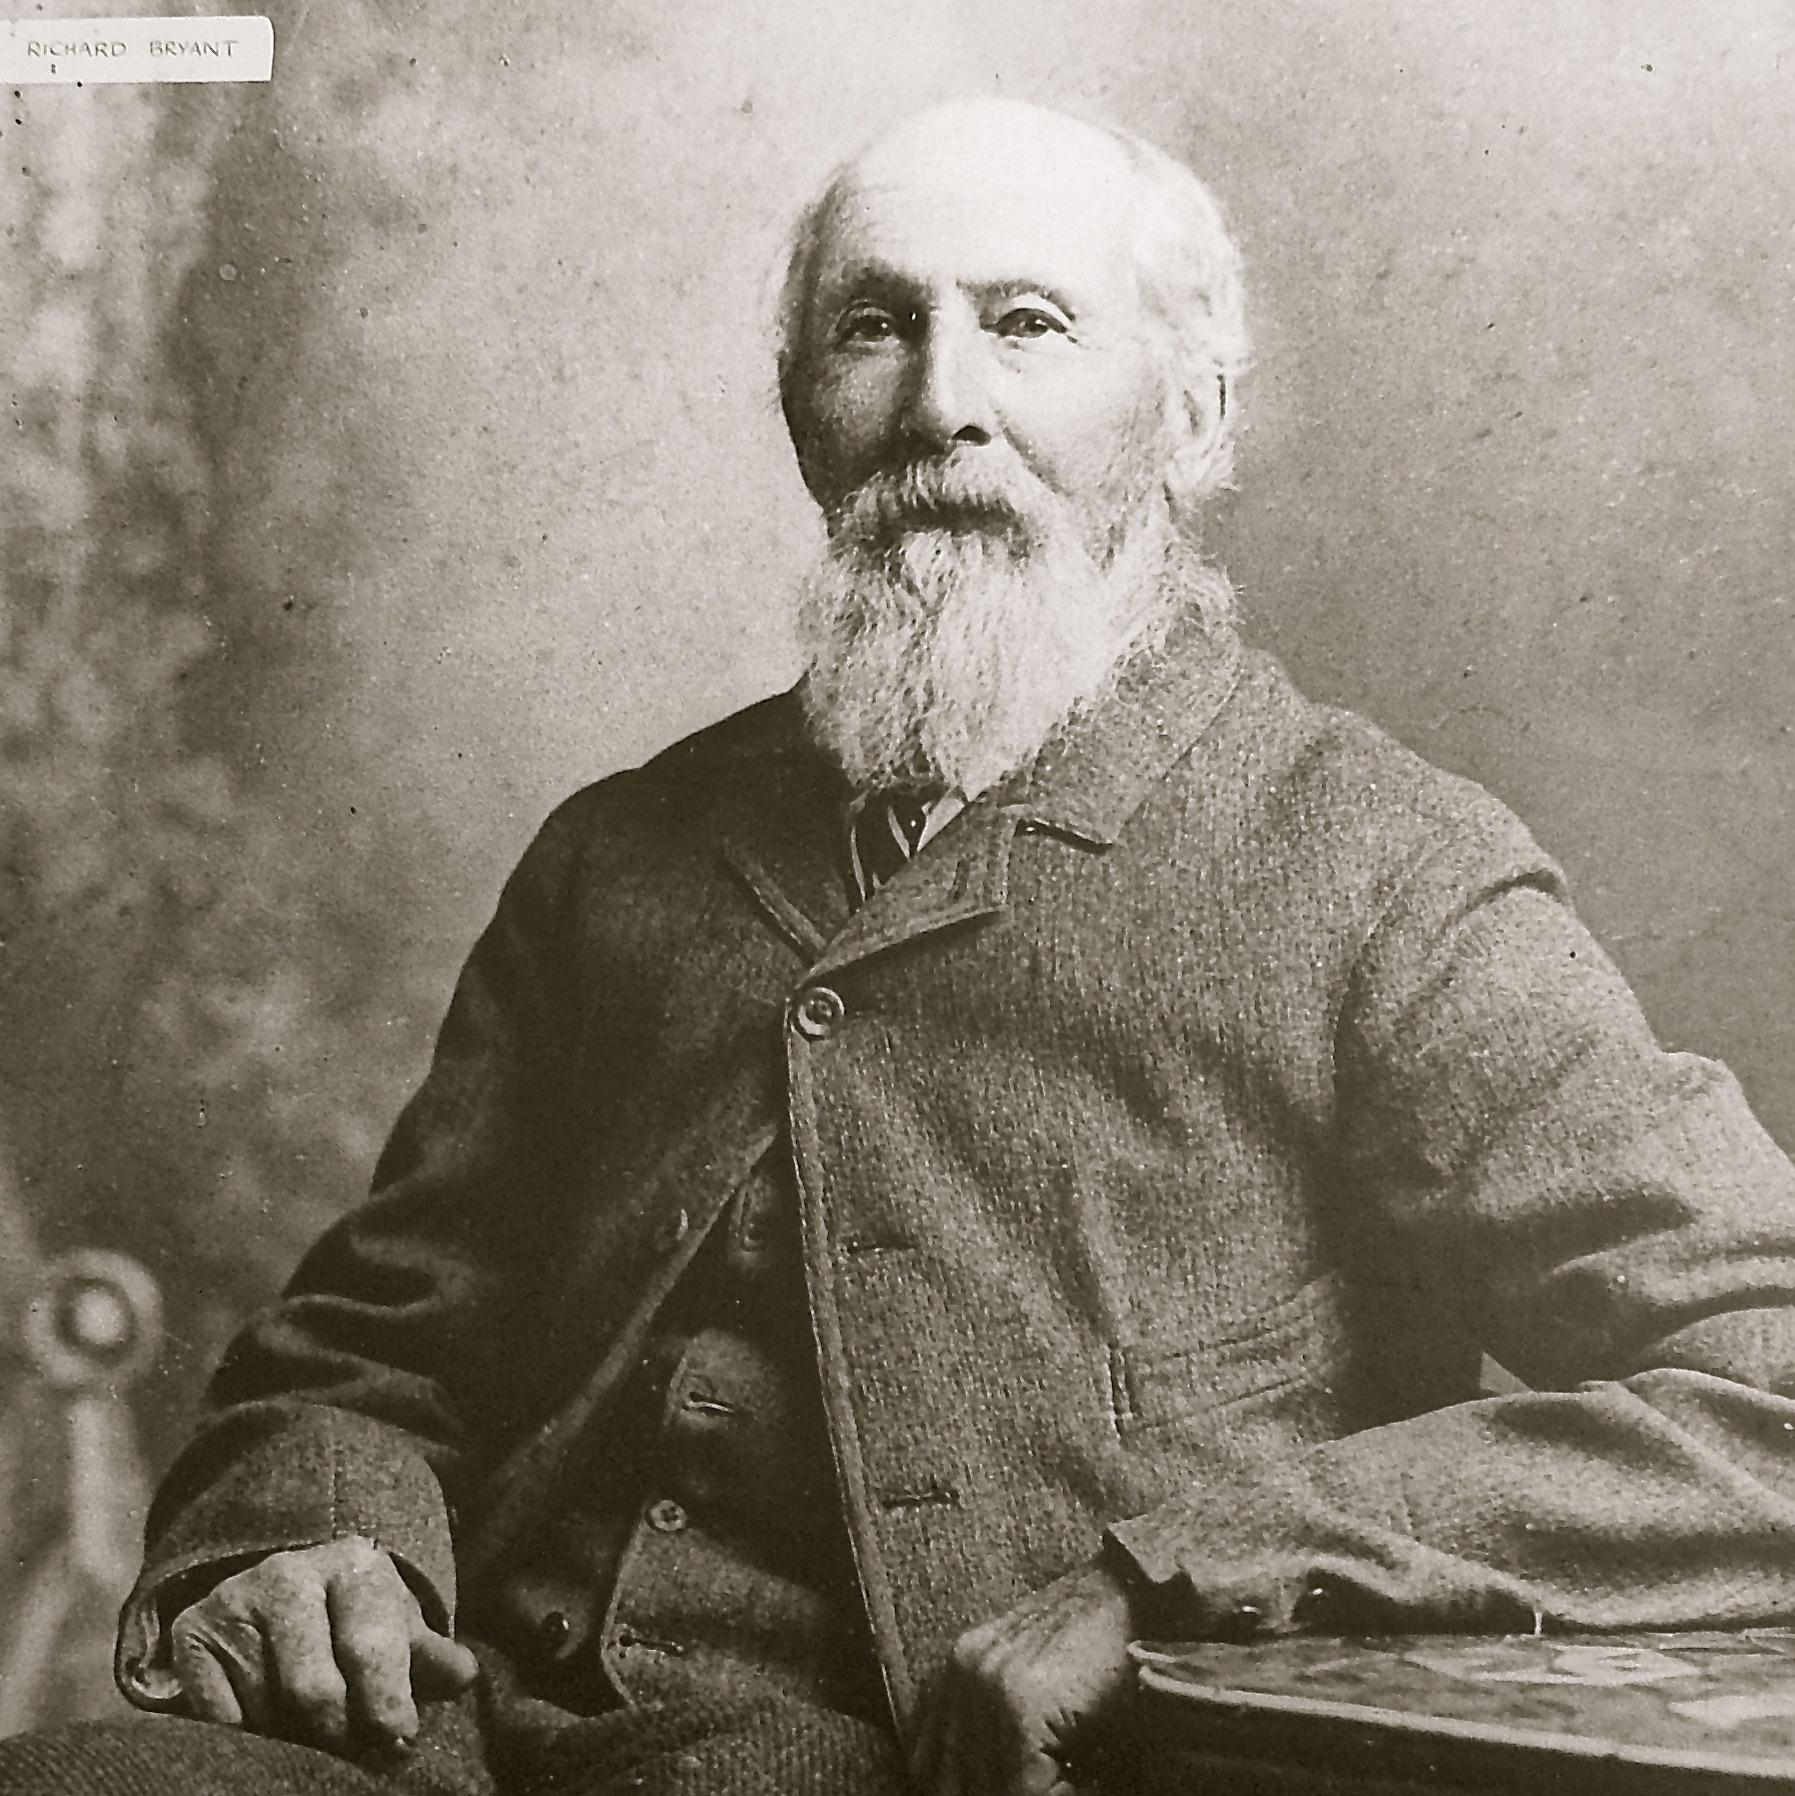 Richard Bryant portrait photo from late 1800s